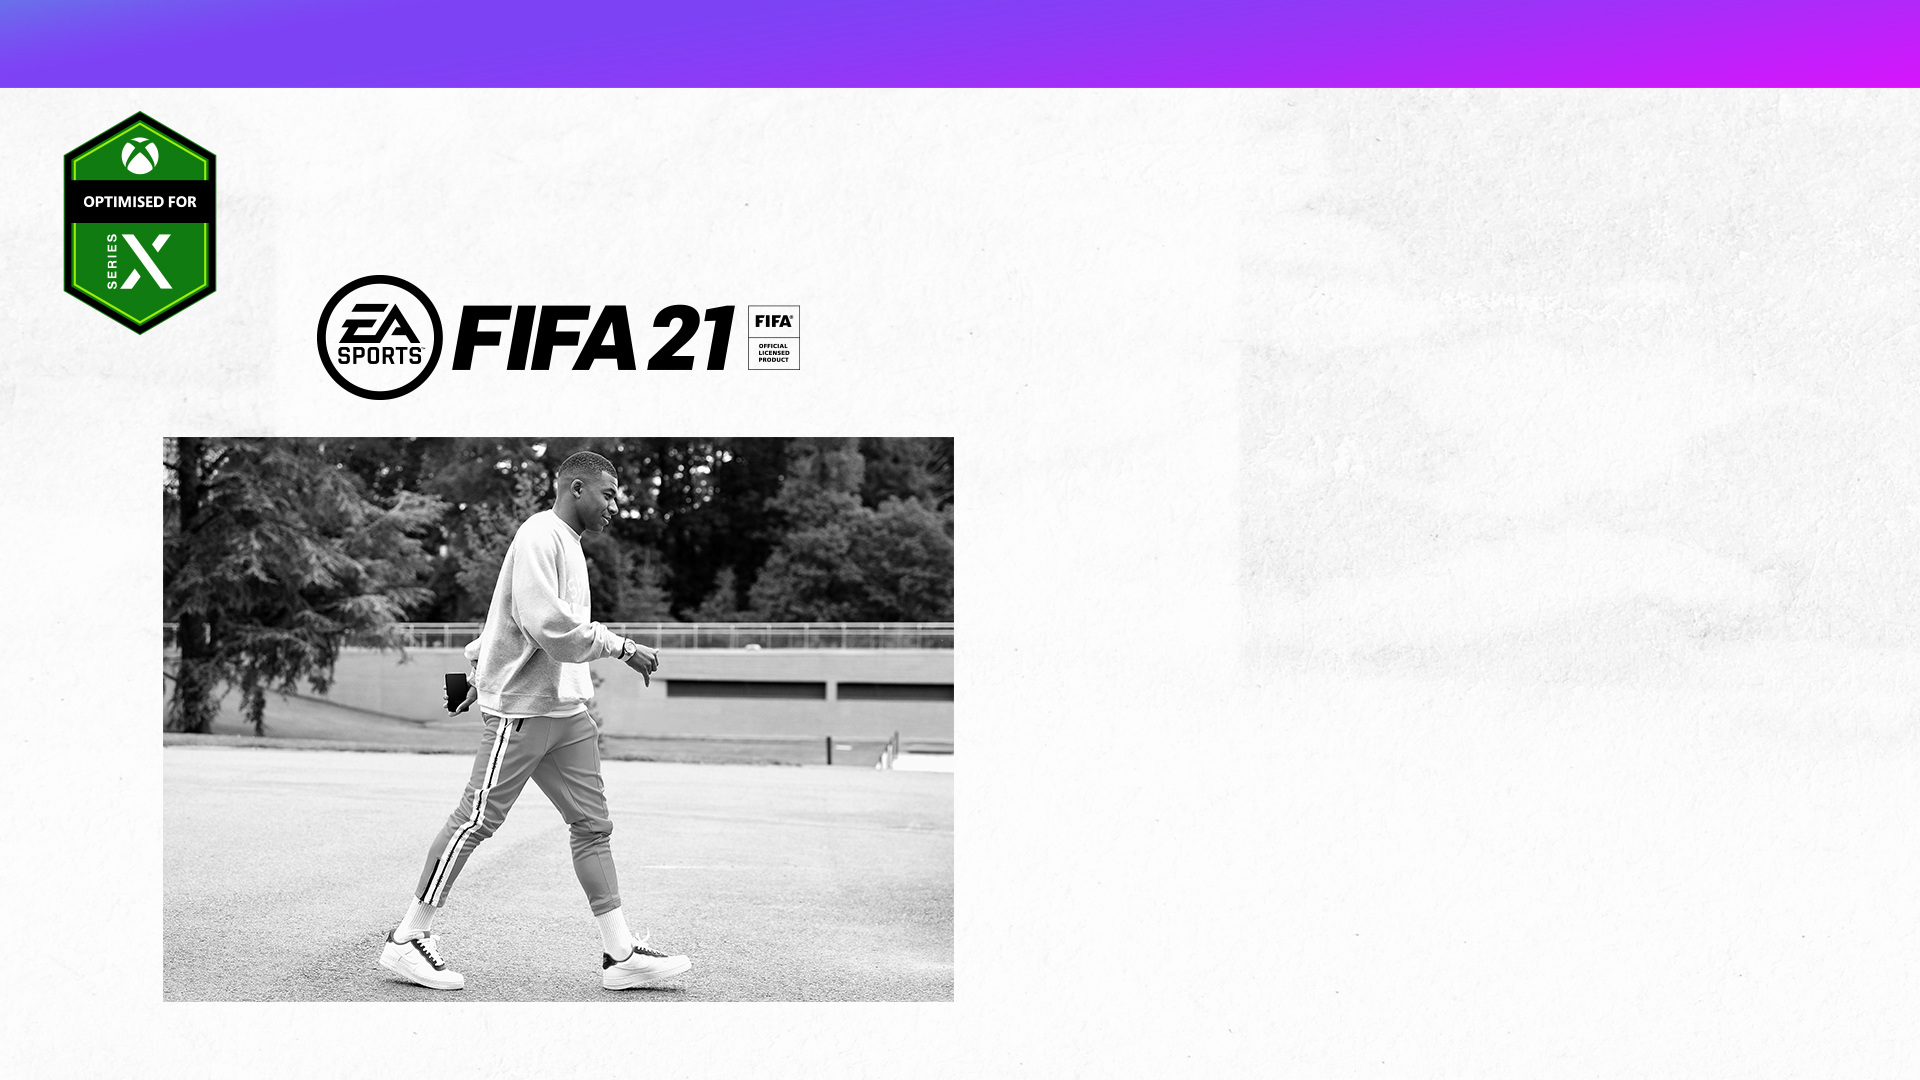 Optimised for Xbox Series X, EA Sports logo, FIFA 21, FIFA Official Licensed Product, Kylian Mbappé walking